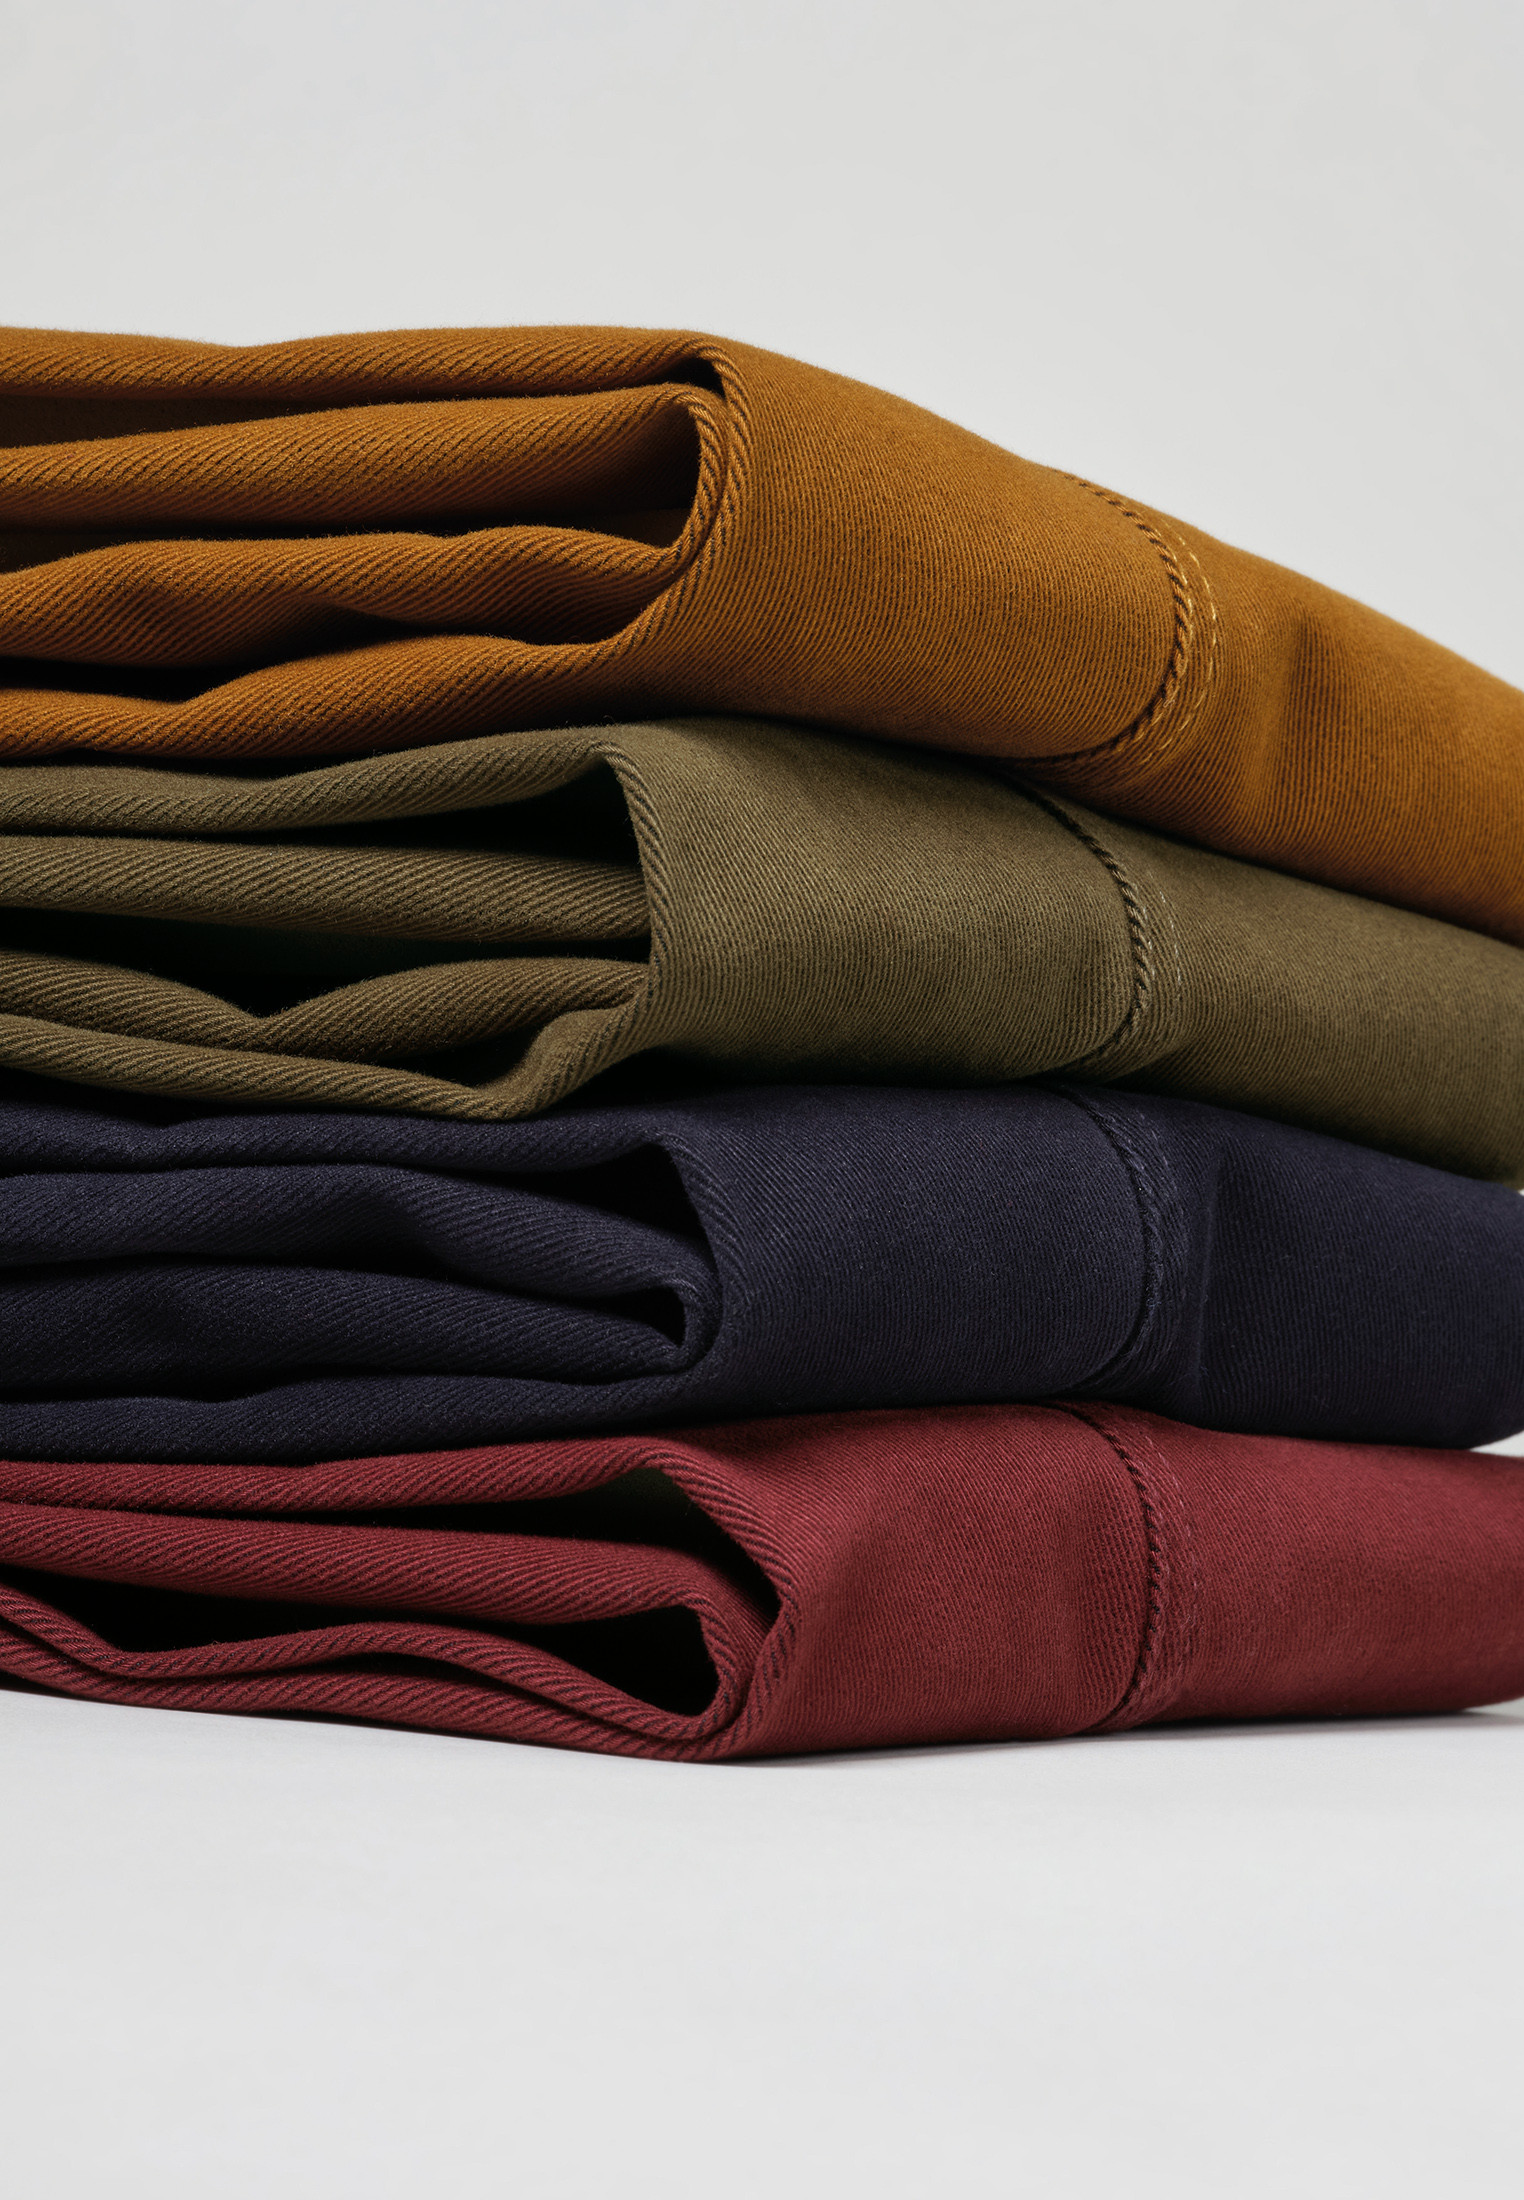 Seychelles Dijon Classic and Tailored Fit Winter Weight Cotton Twill Trouser